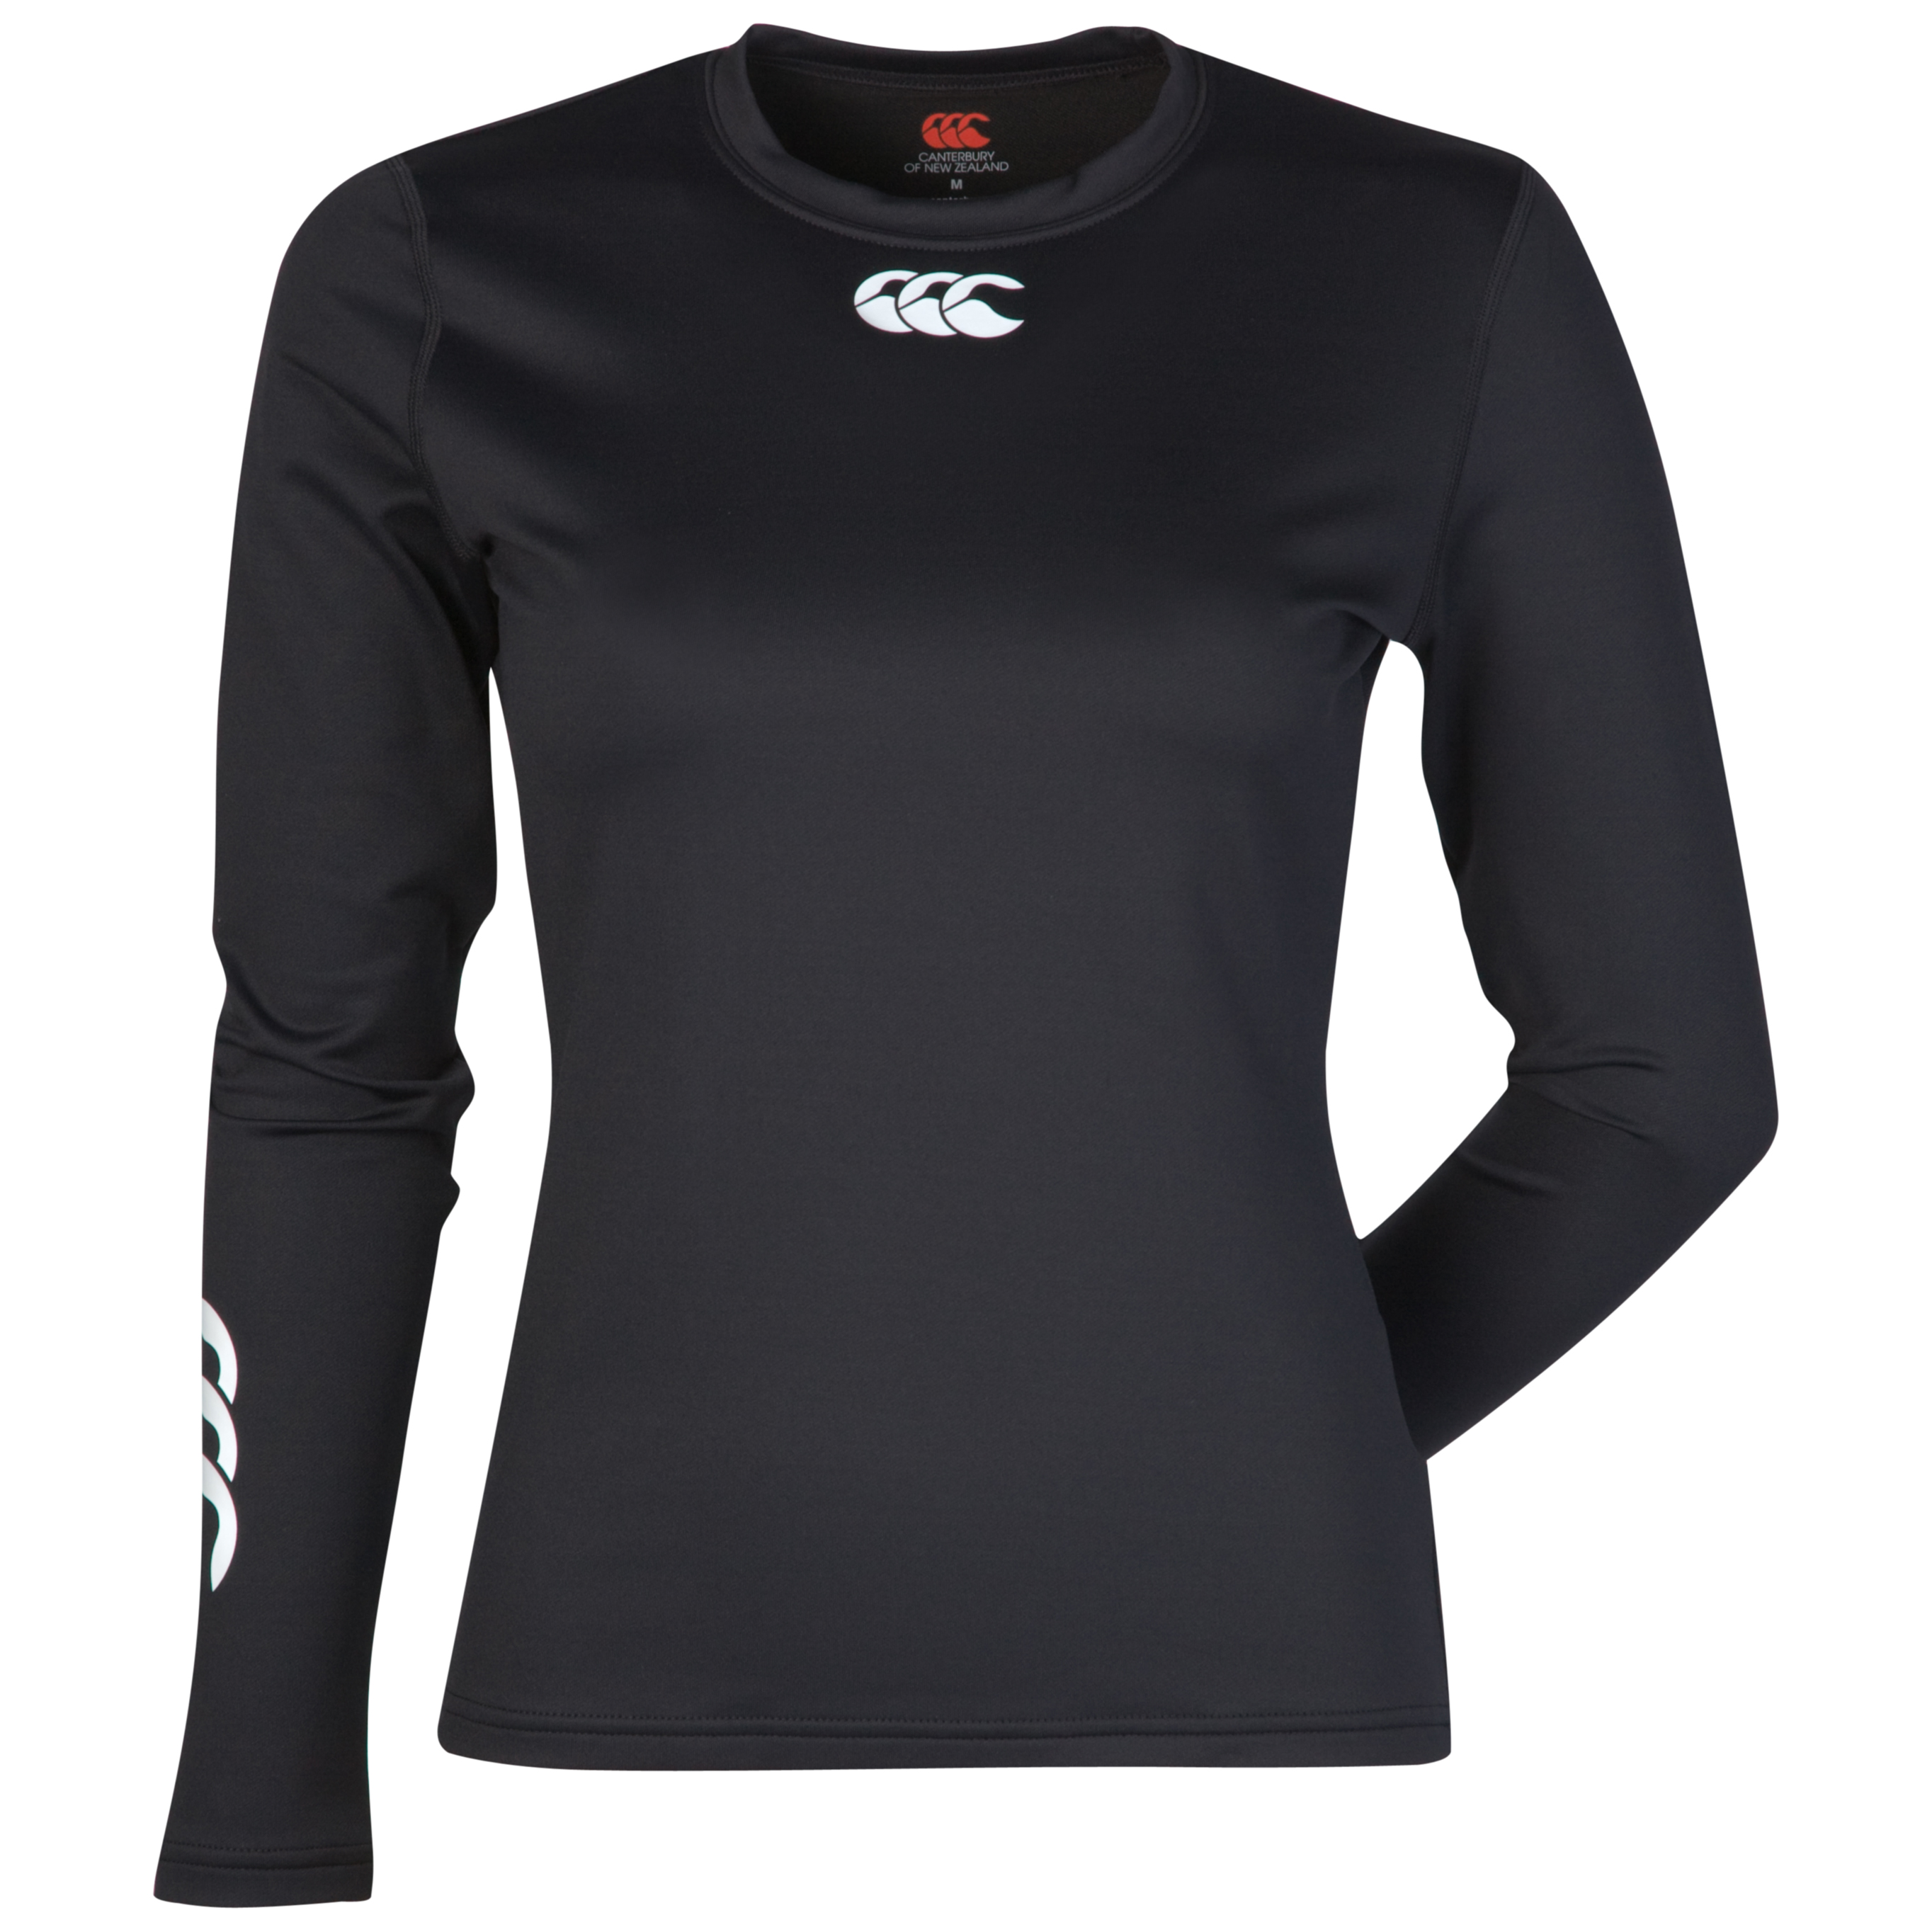 Canterbury Cold Long Sleeve Baselayer Top - Womens - Black